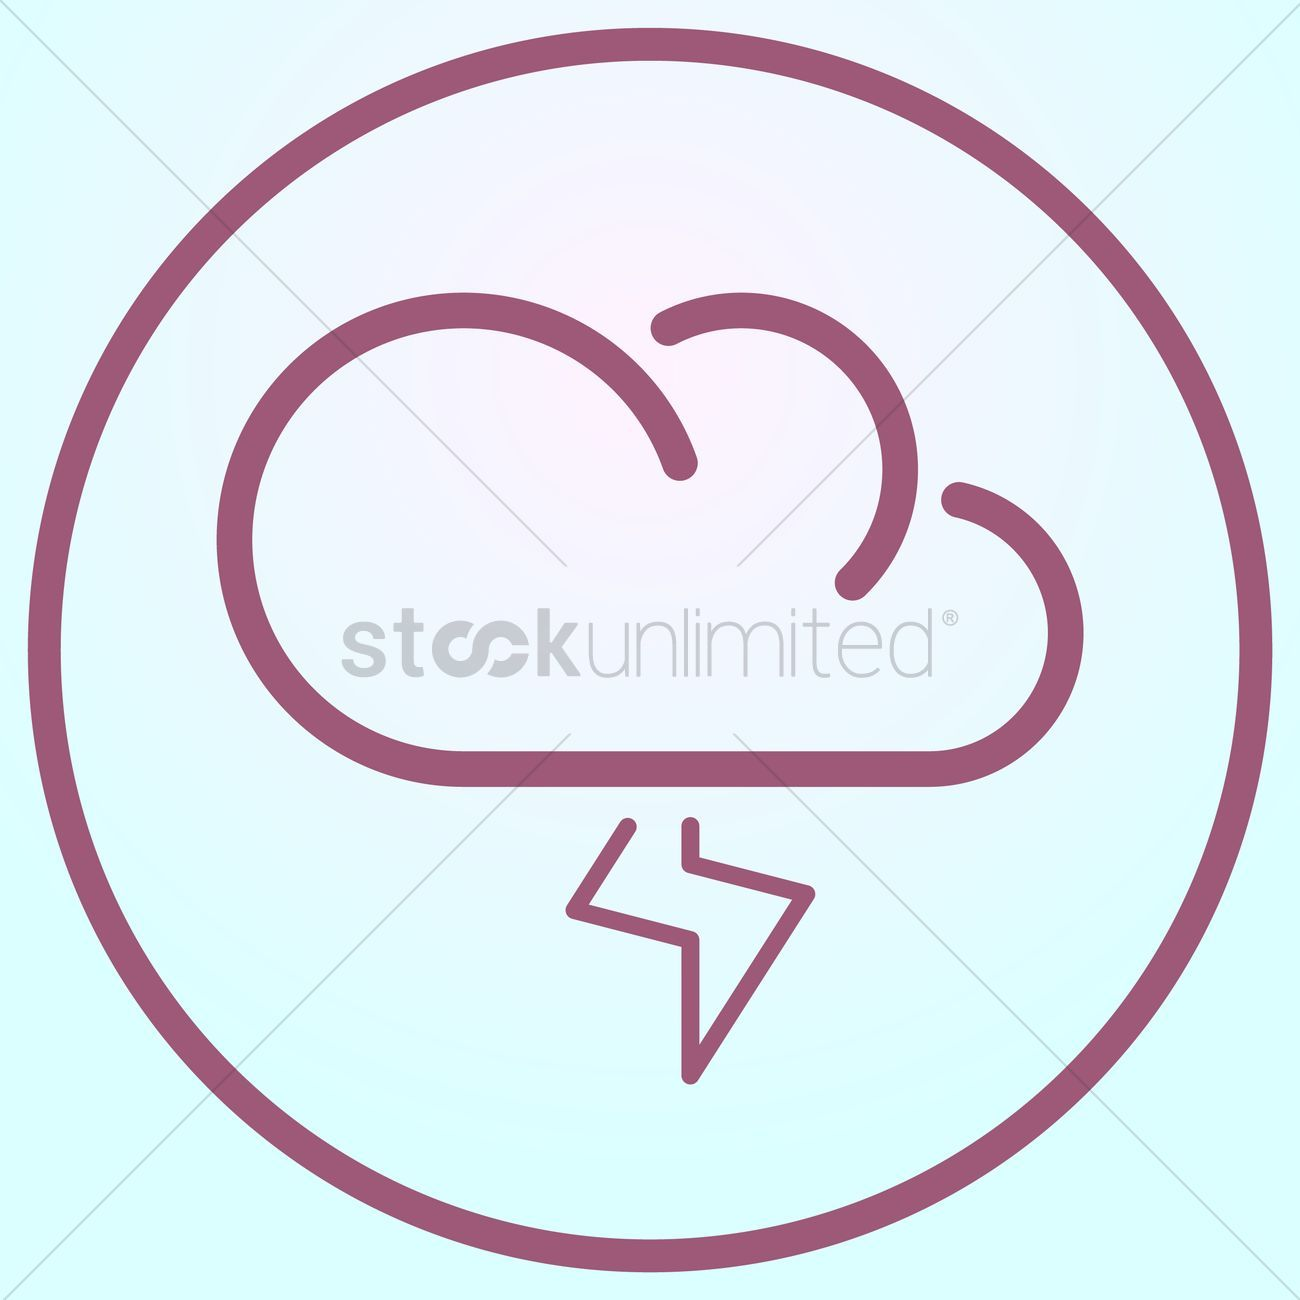 cloud and thunder vector illustration affiliate thunder cloud illustration vector affiliate in 2020 vector pattern symbol logo logo design inspiration pinterest